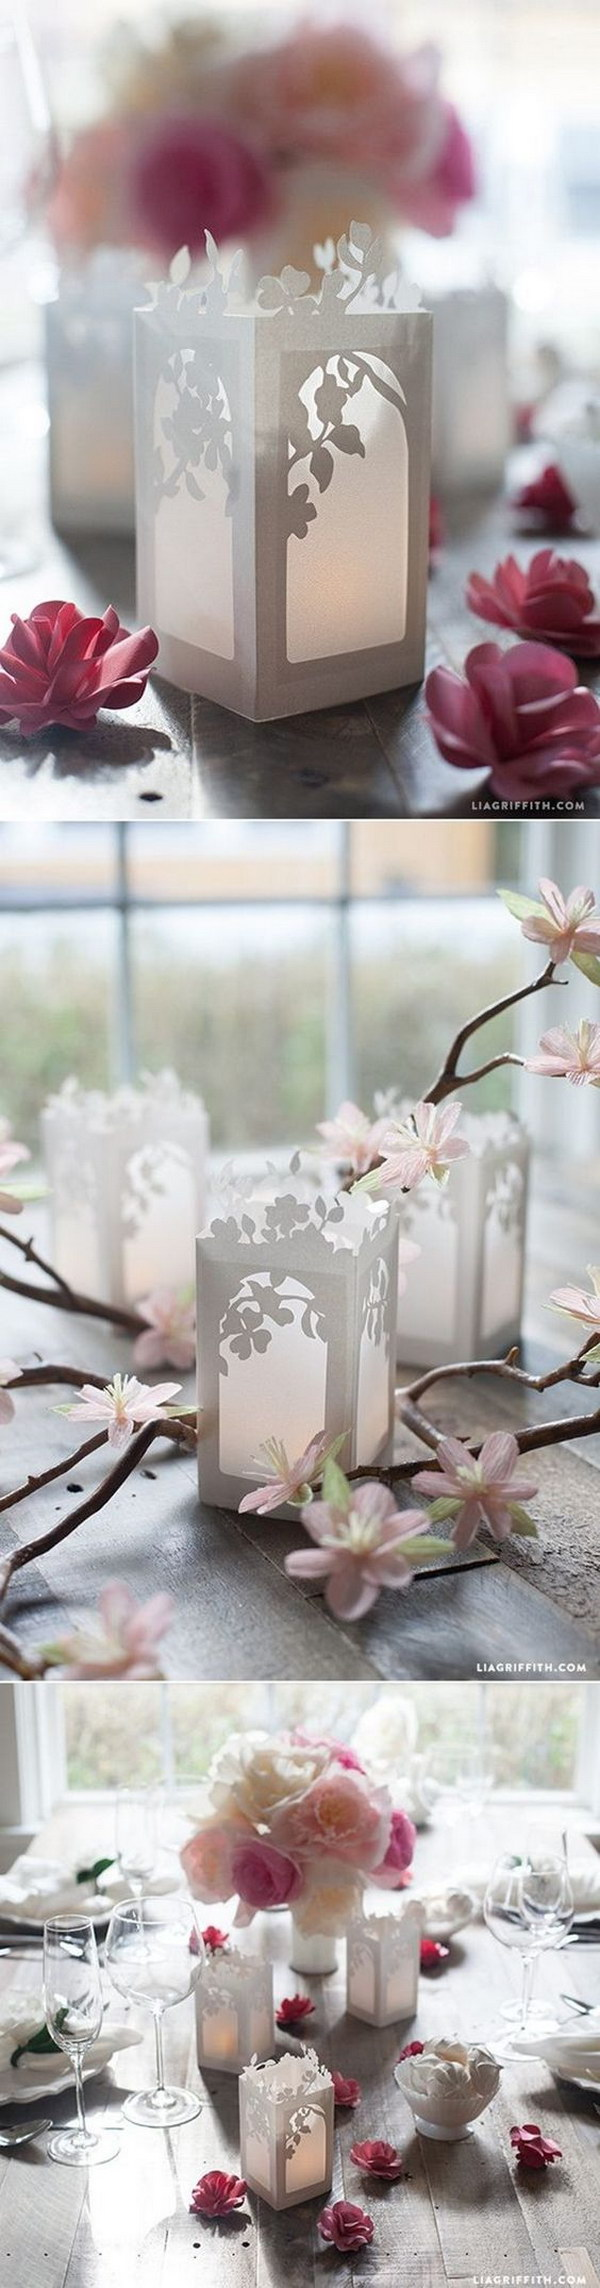 DIY Paper Lanterns Wedding Centerpieces